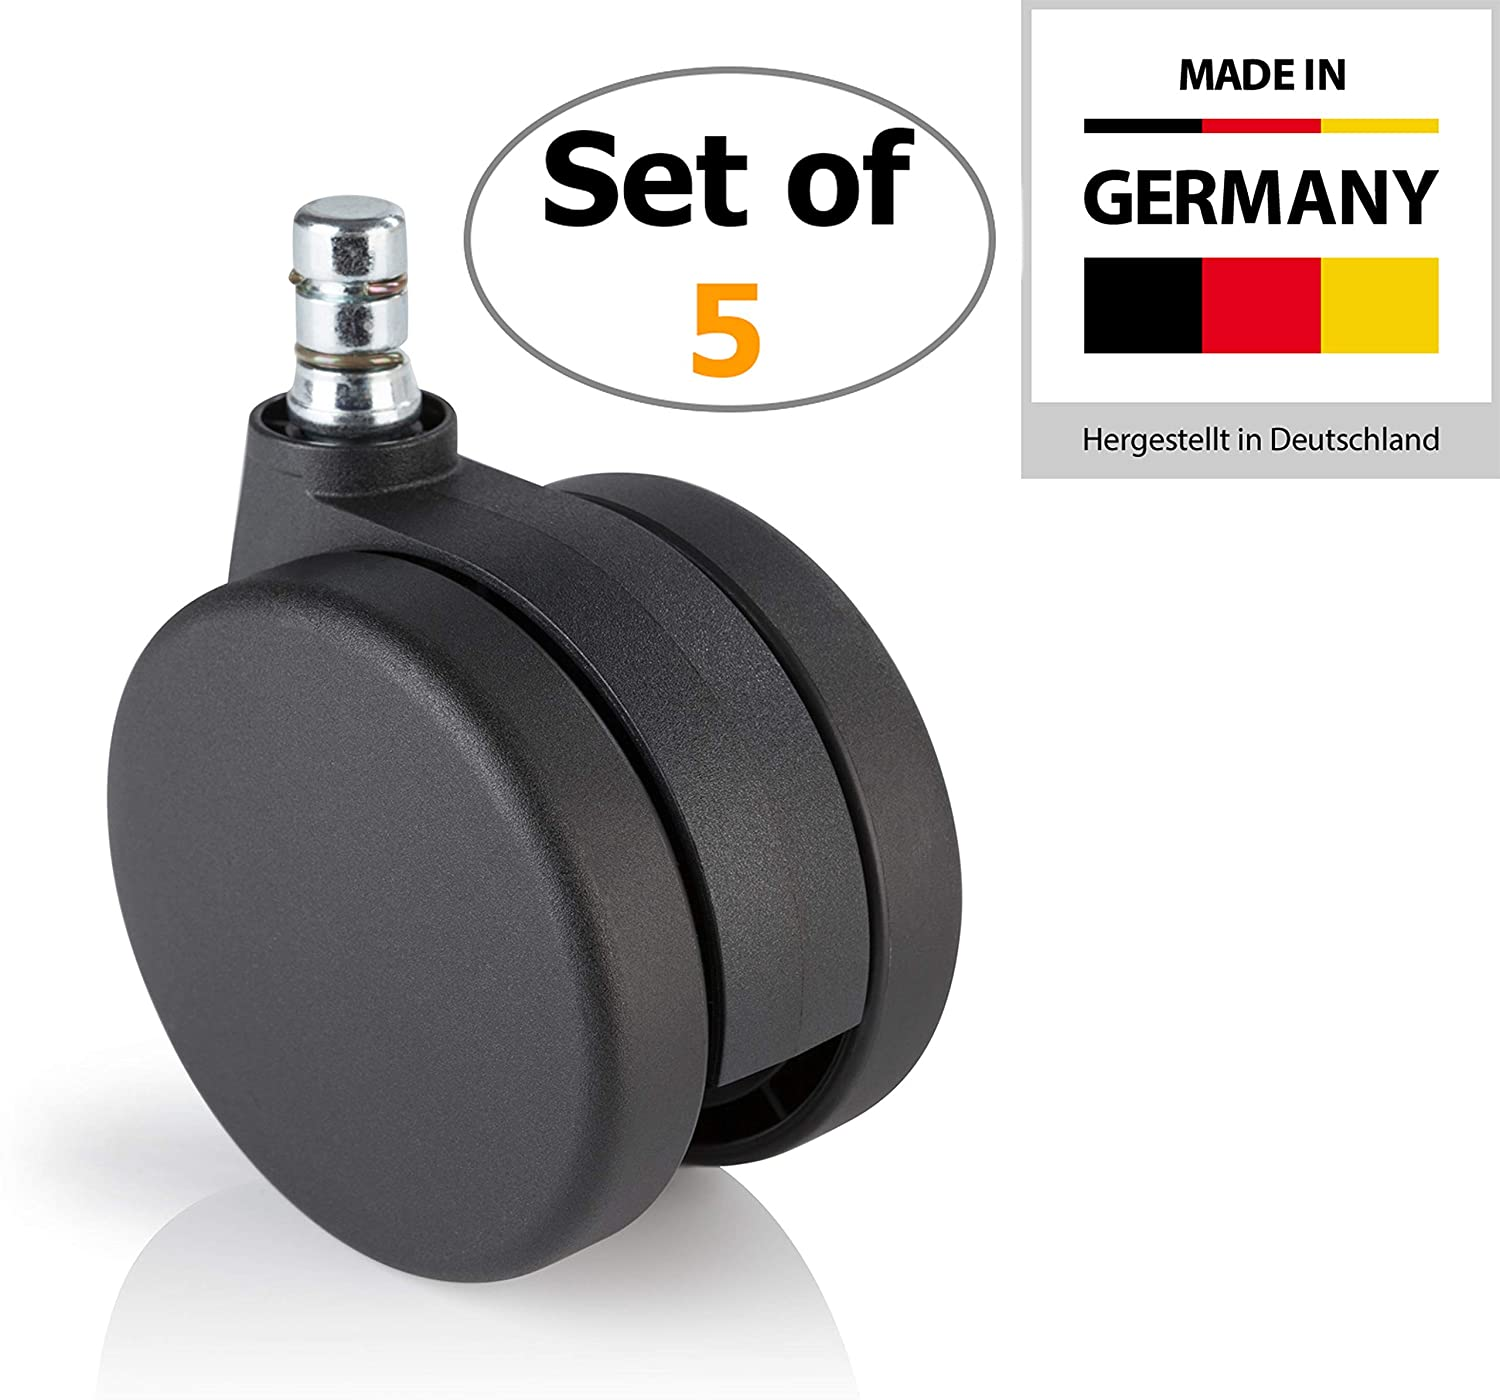 hjh OFFICE 3 inch Office Chair Caster Wheels 7/16 inch Stem Diameter (Set of 5) Casters for Carpet Floors